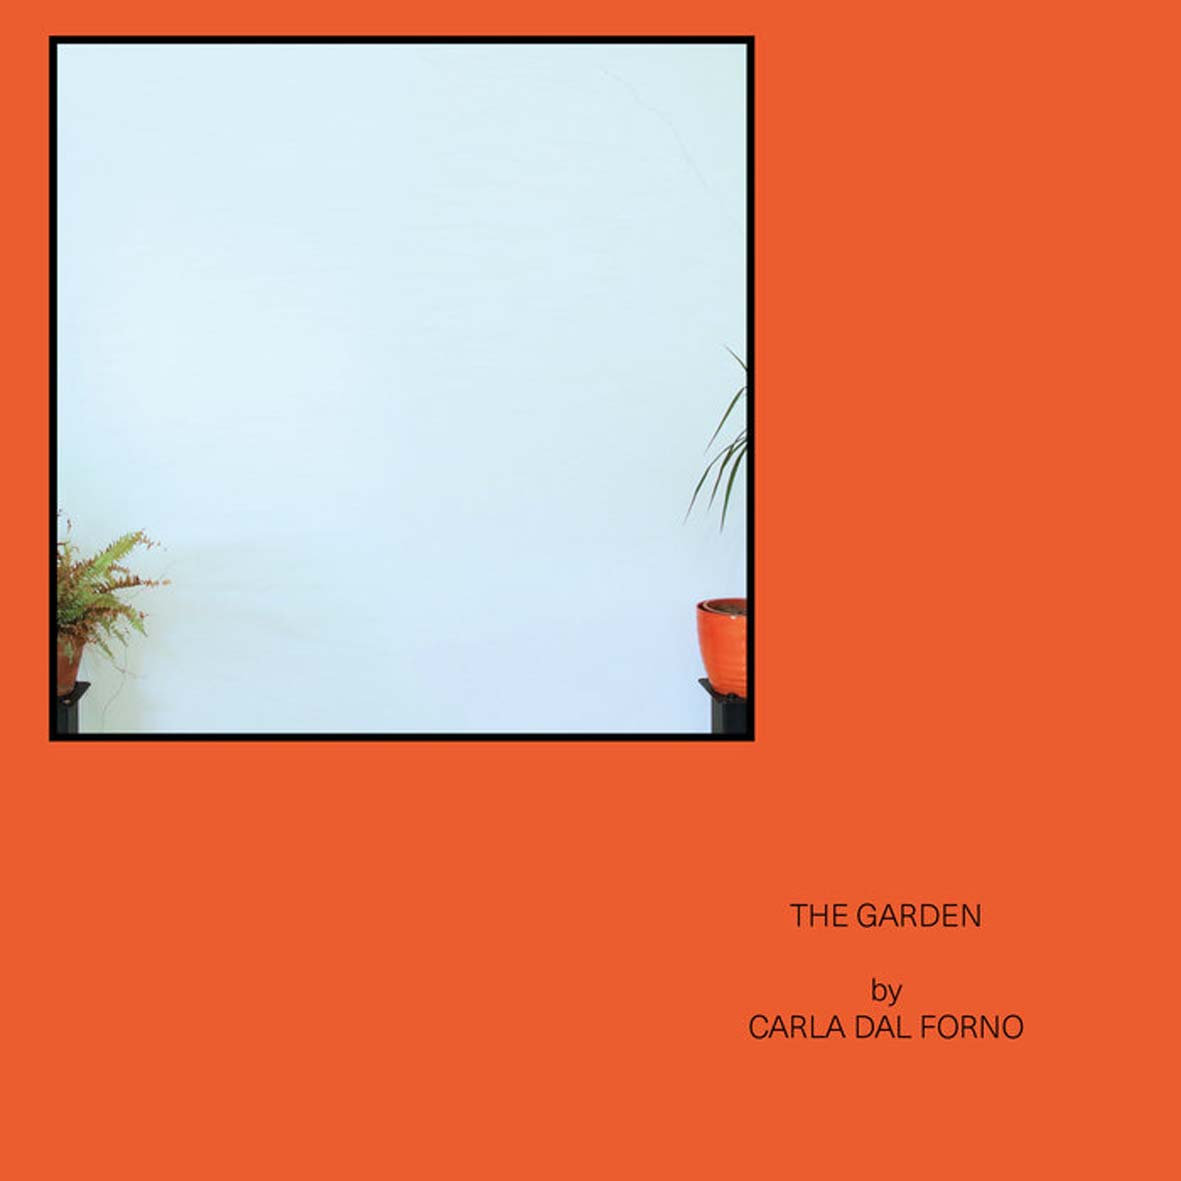 https://brainwashed.com/brain/images/carla_dal_forno-the_garden.jpg